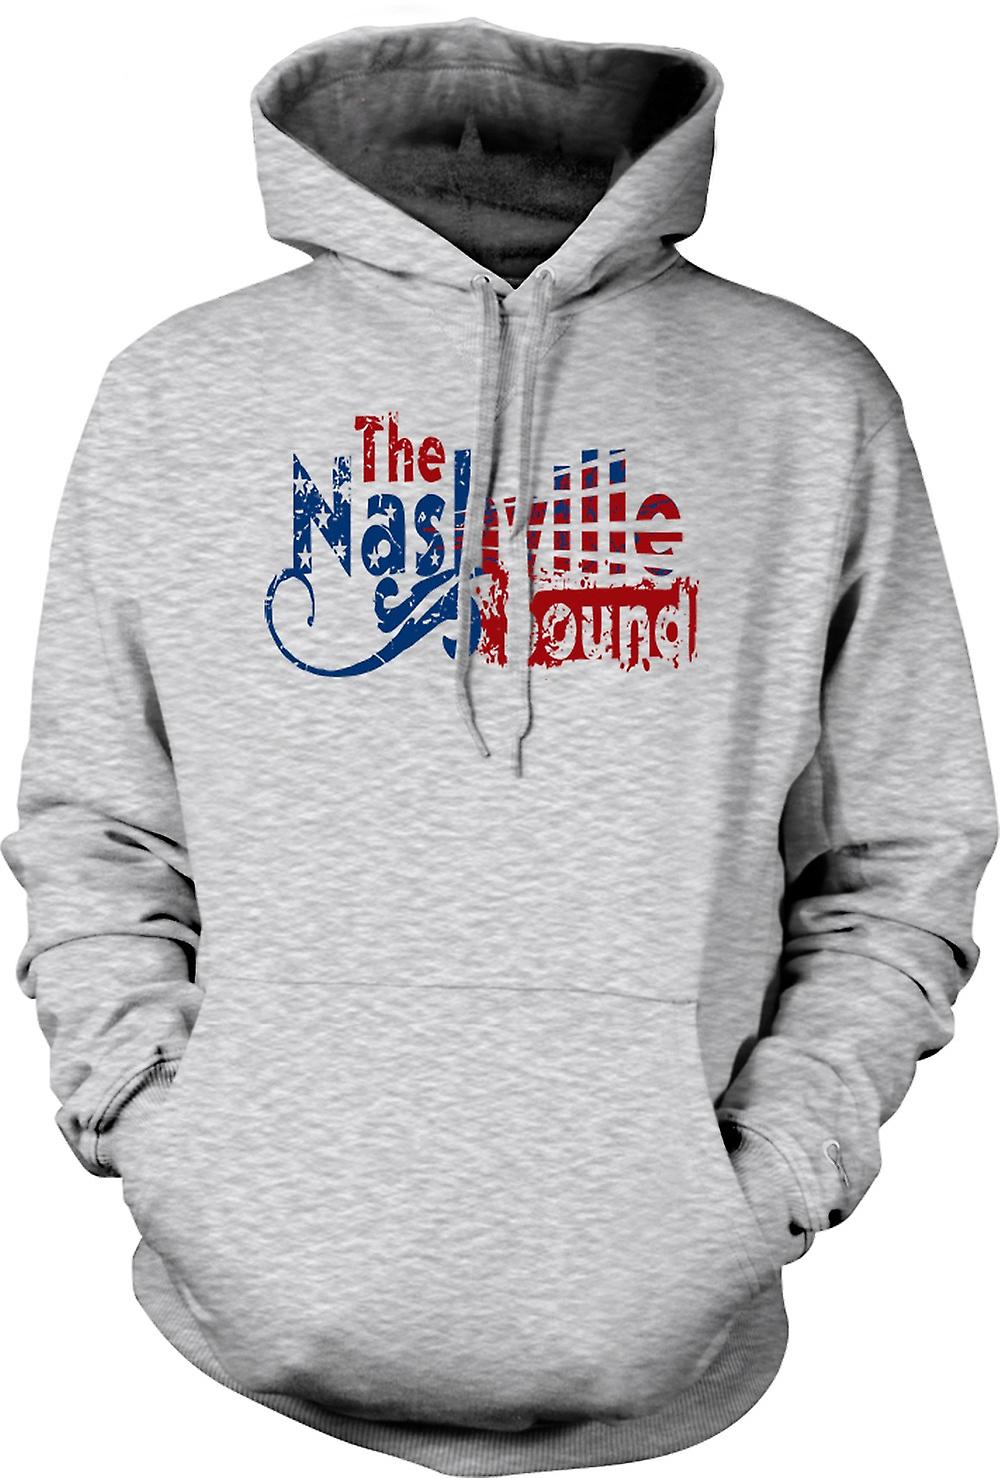 Mens Hoodie - Nashville Sound - Blues Country Music